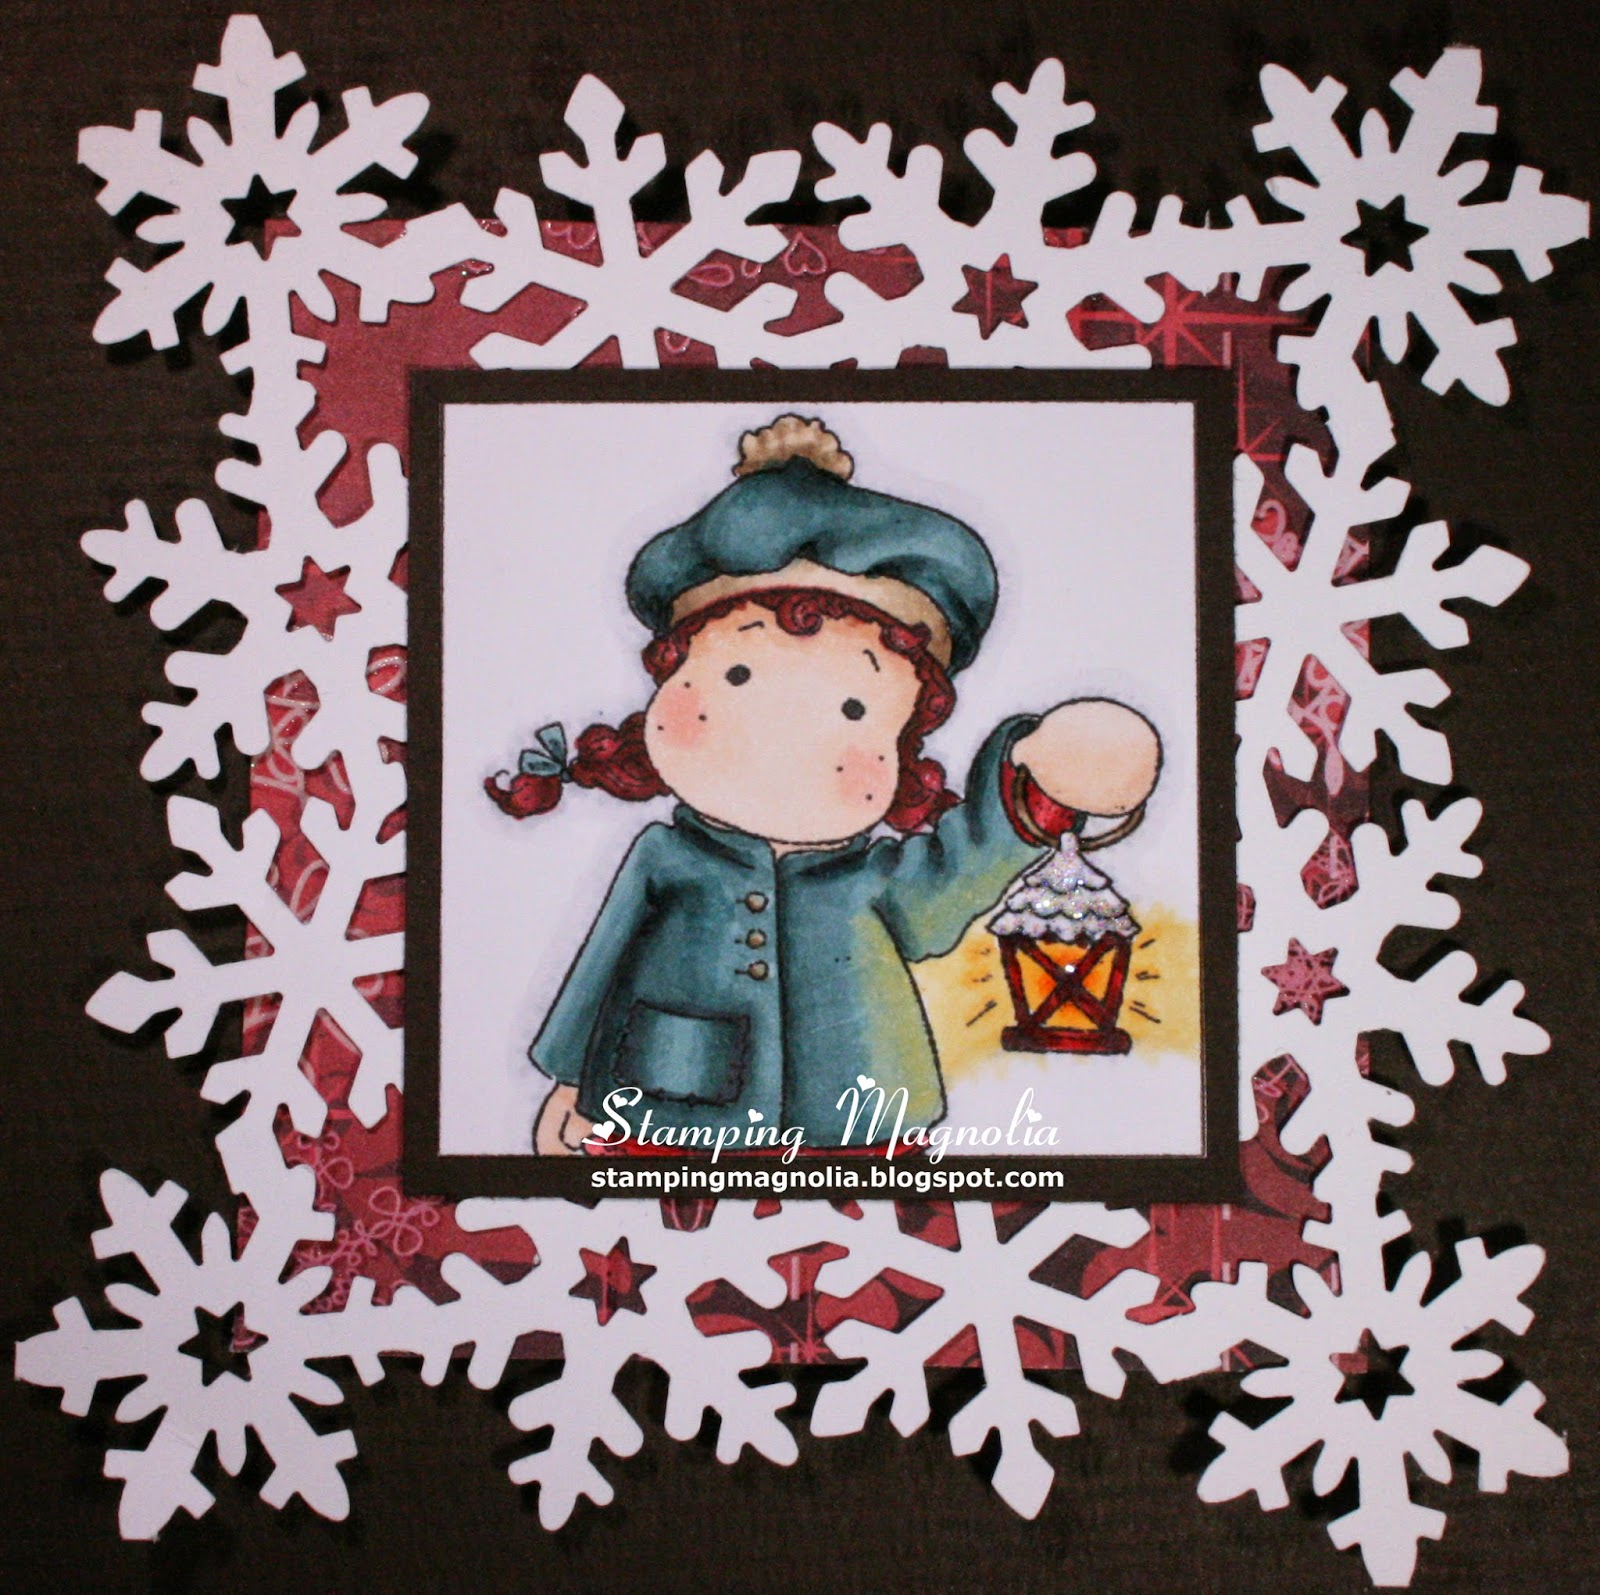 Coloring Magnolia Stamp Sweet Christmas Dreams Collection - Midwinter Tilda